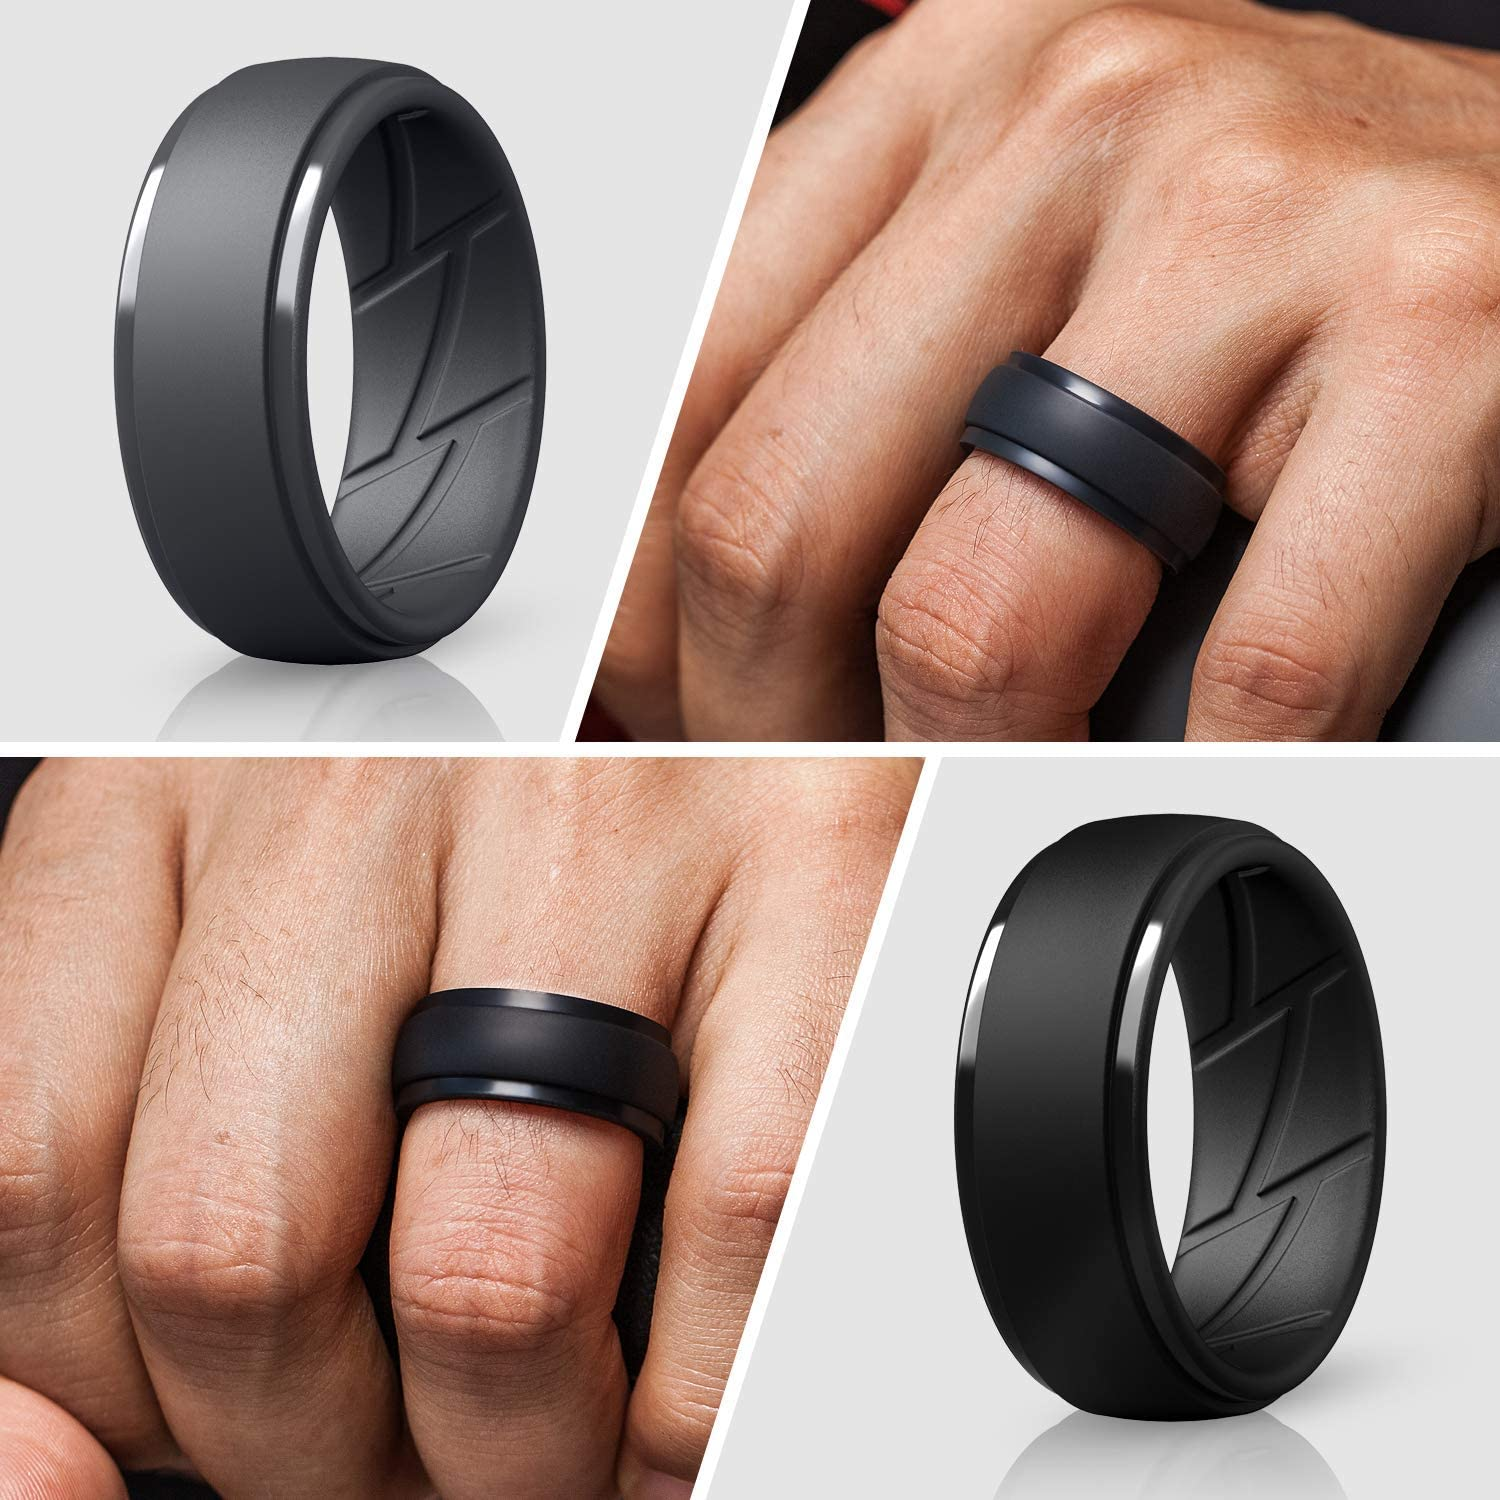 2.5mm Thick 10mm Wide Breathable with Air Flow Grooves ThunderFit Silicone Wedding Ring for Men